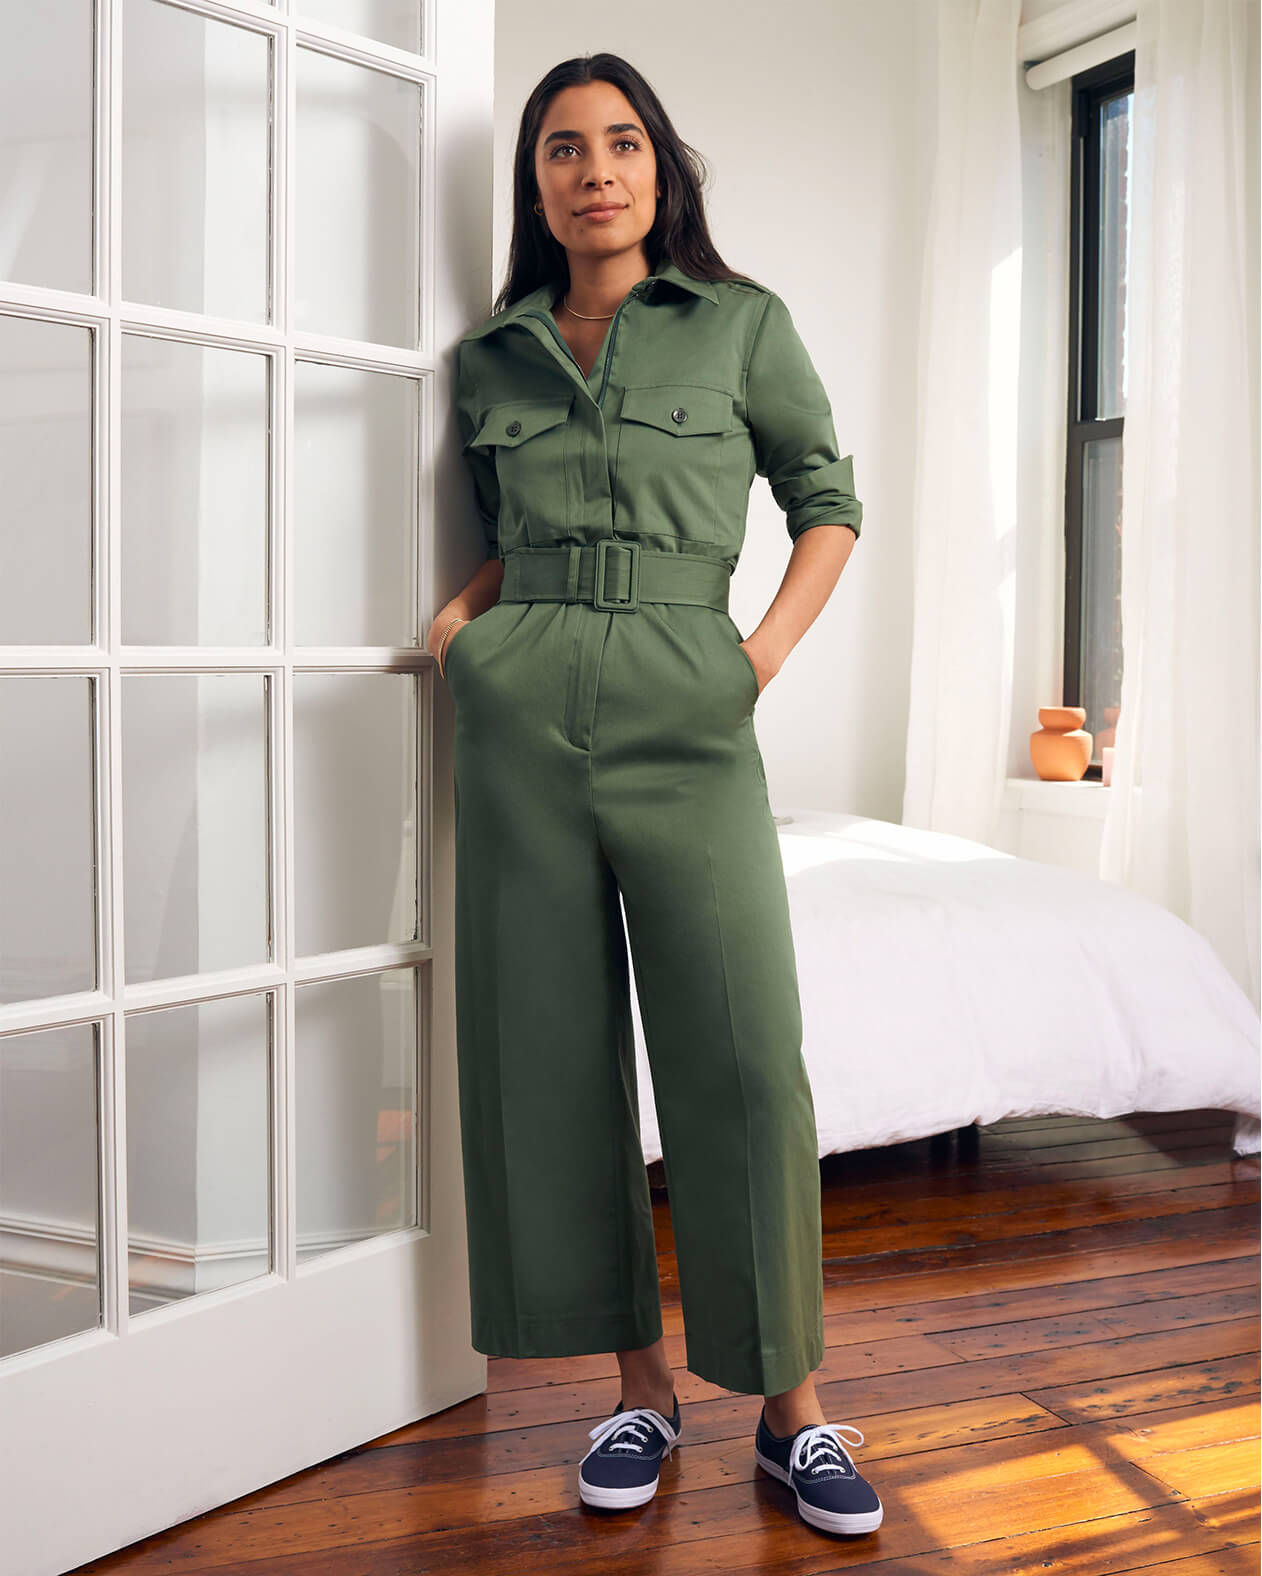 Bianca Valle in Green Julian Workwear Jumpsuit